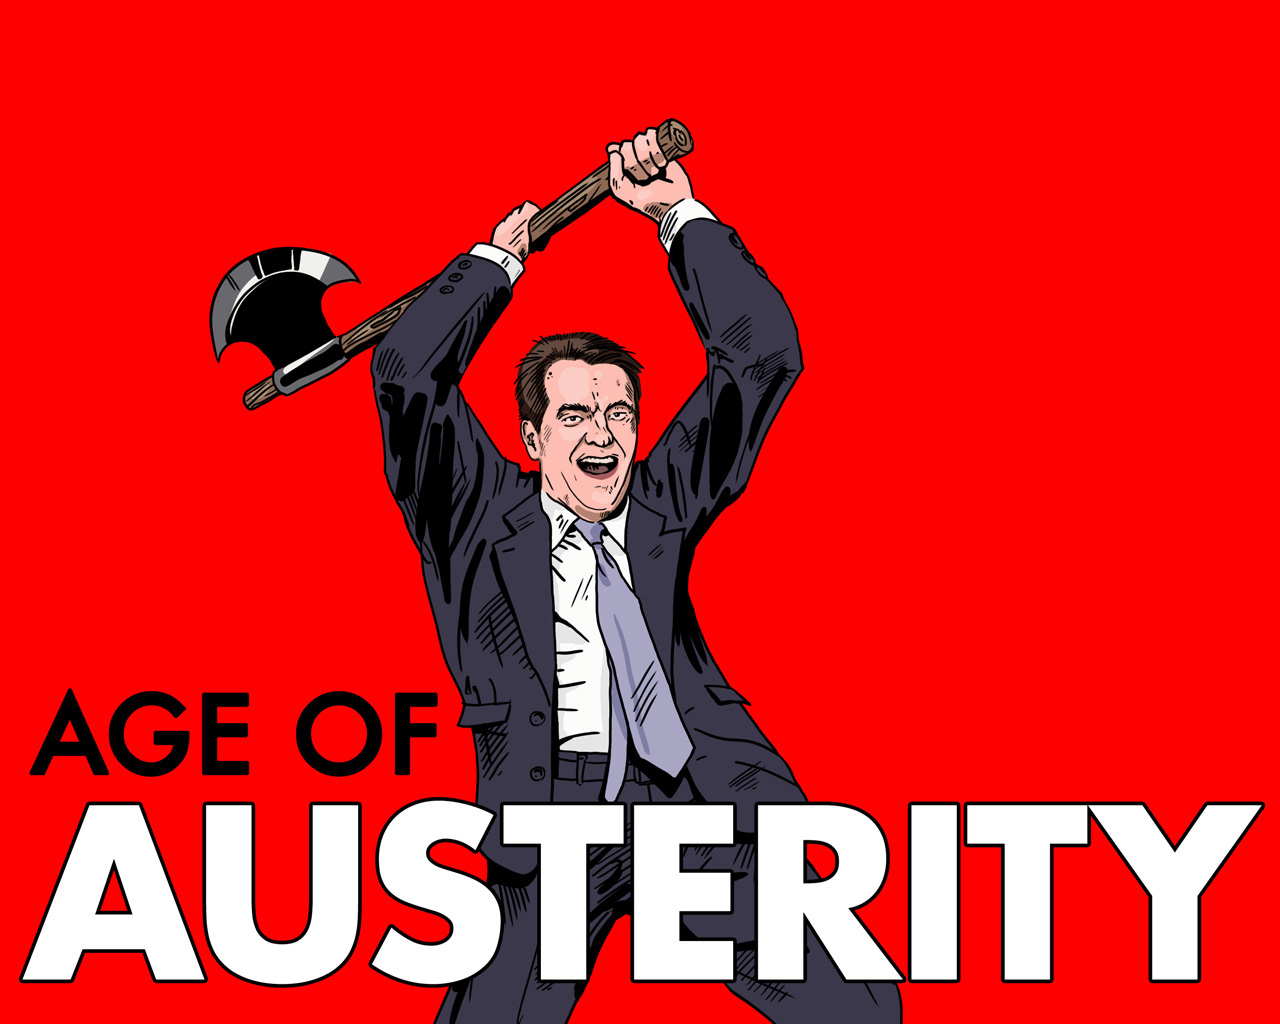 Rage Against Austerity | austerity-george-osborne-desktop | Civil Disobedience Free Speech Government Government Corruption International Monetary Fund News Articles Occupy Protestors & Activists US News